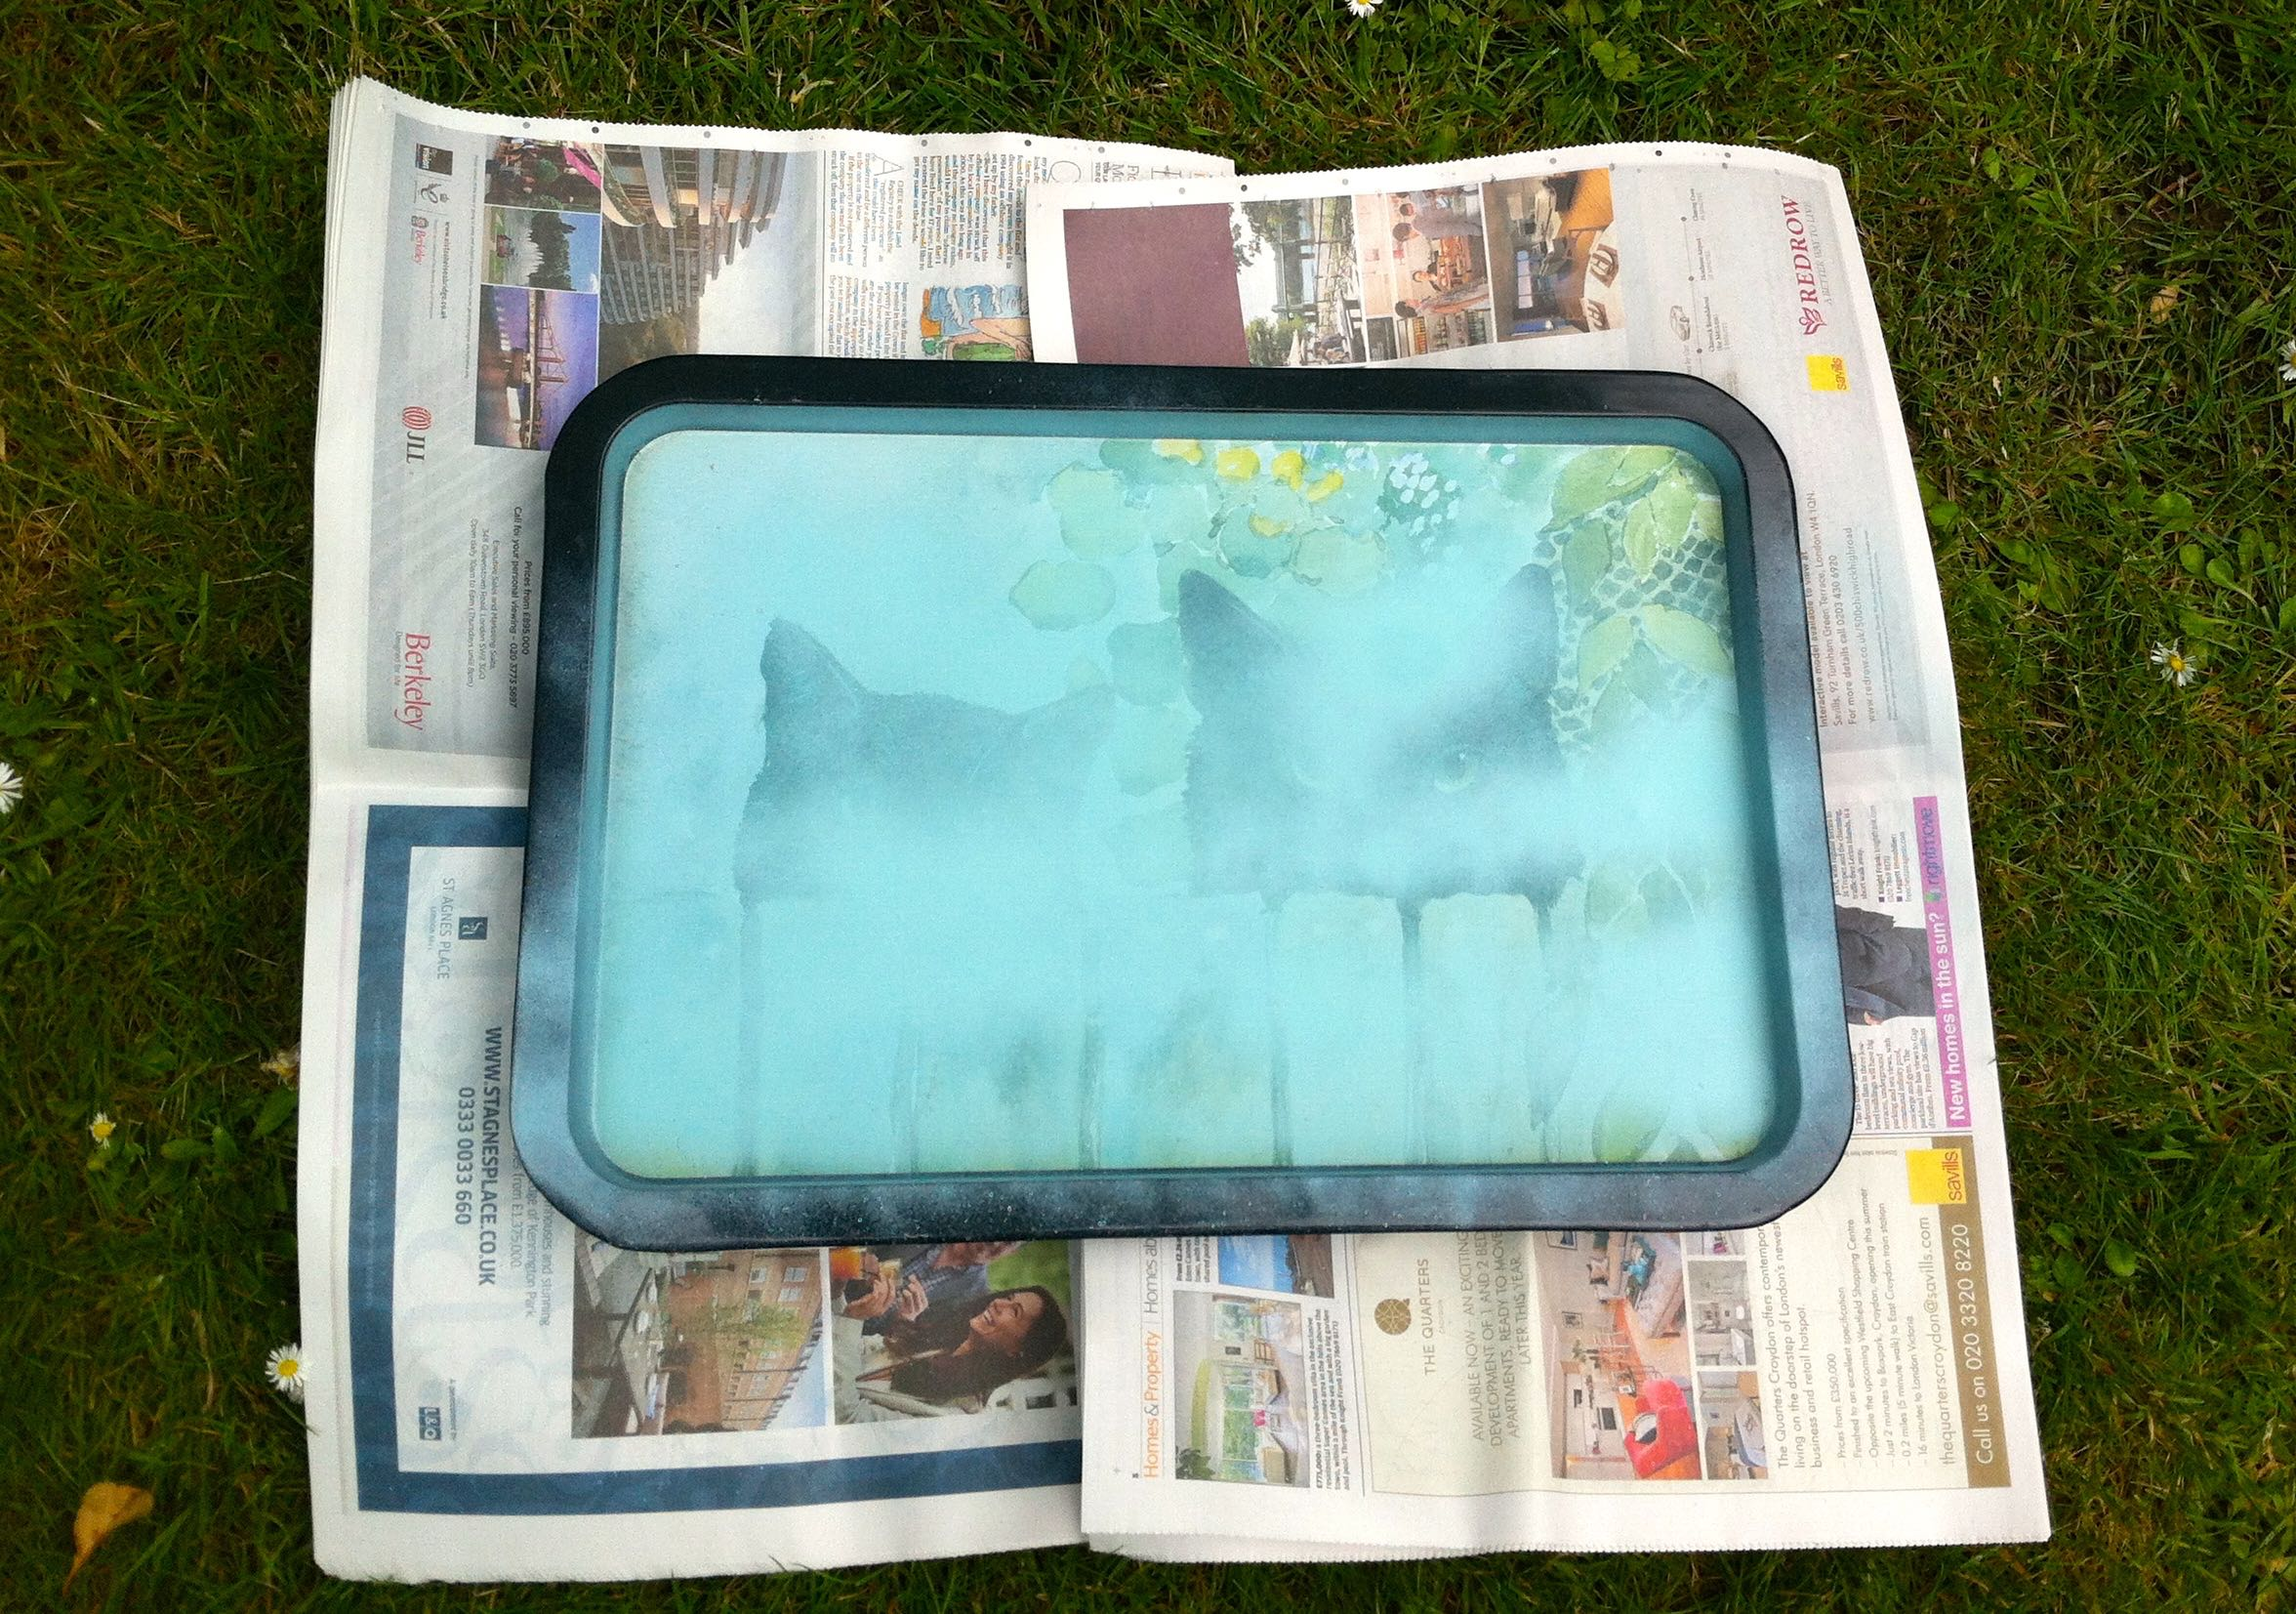 Spraying the metal tray with Pinty Plus Chalk Paint Spray